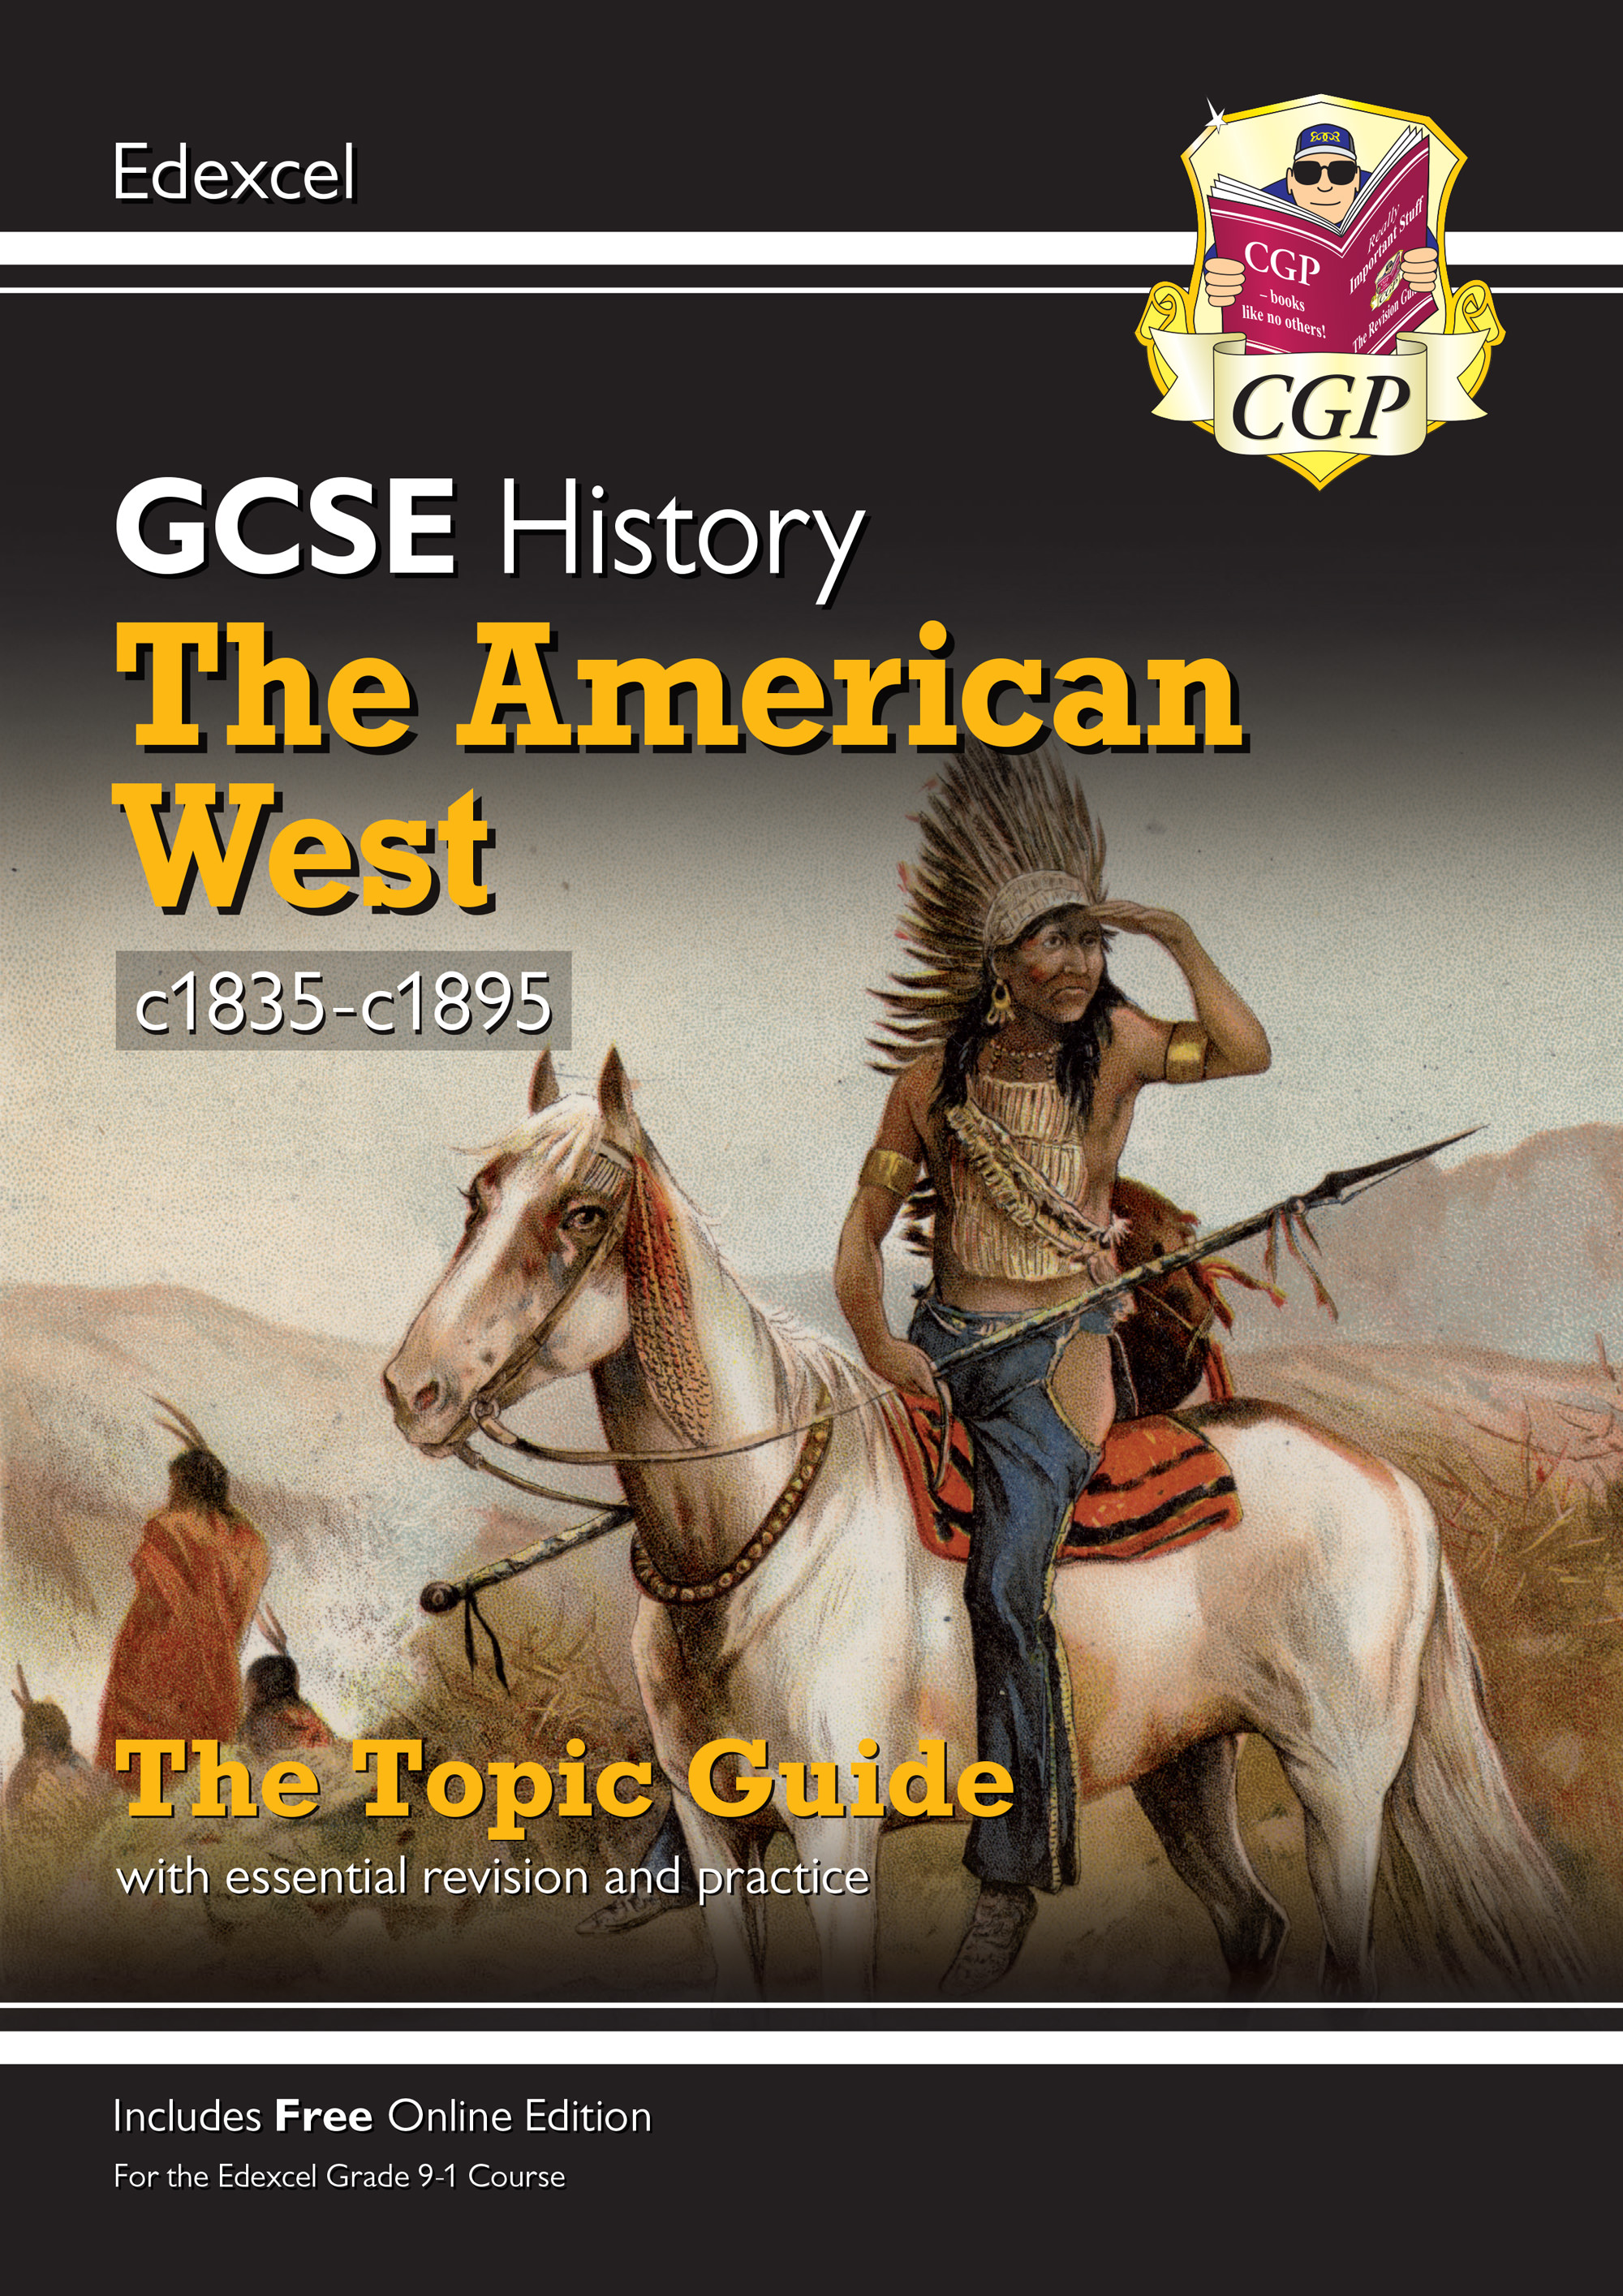 HEAWO41 - New Grade 9-1 GCSE History Edexcel Topic Guide - The American West, c1835-c1895